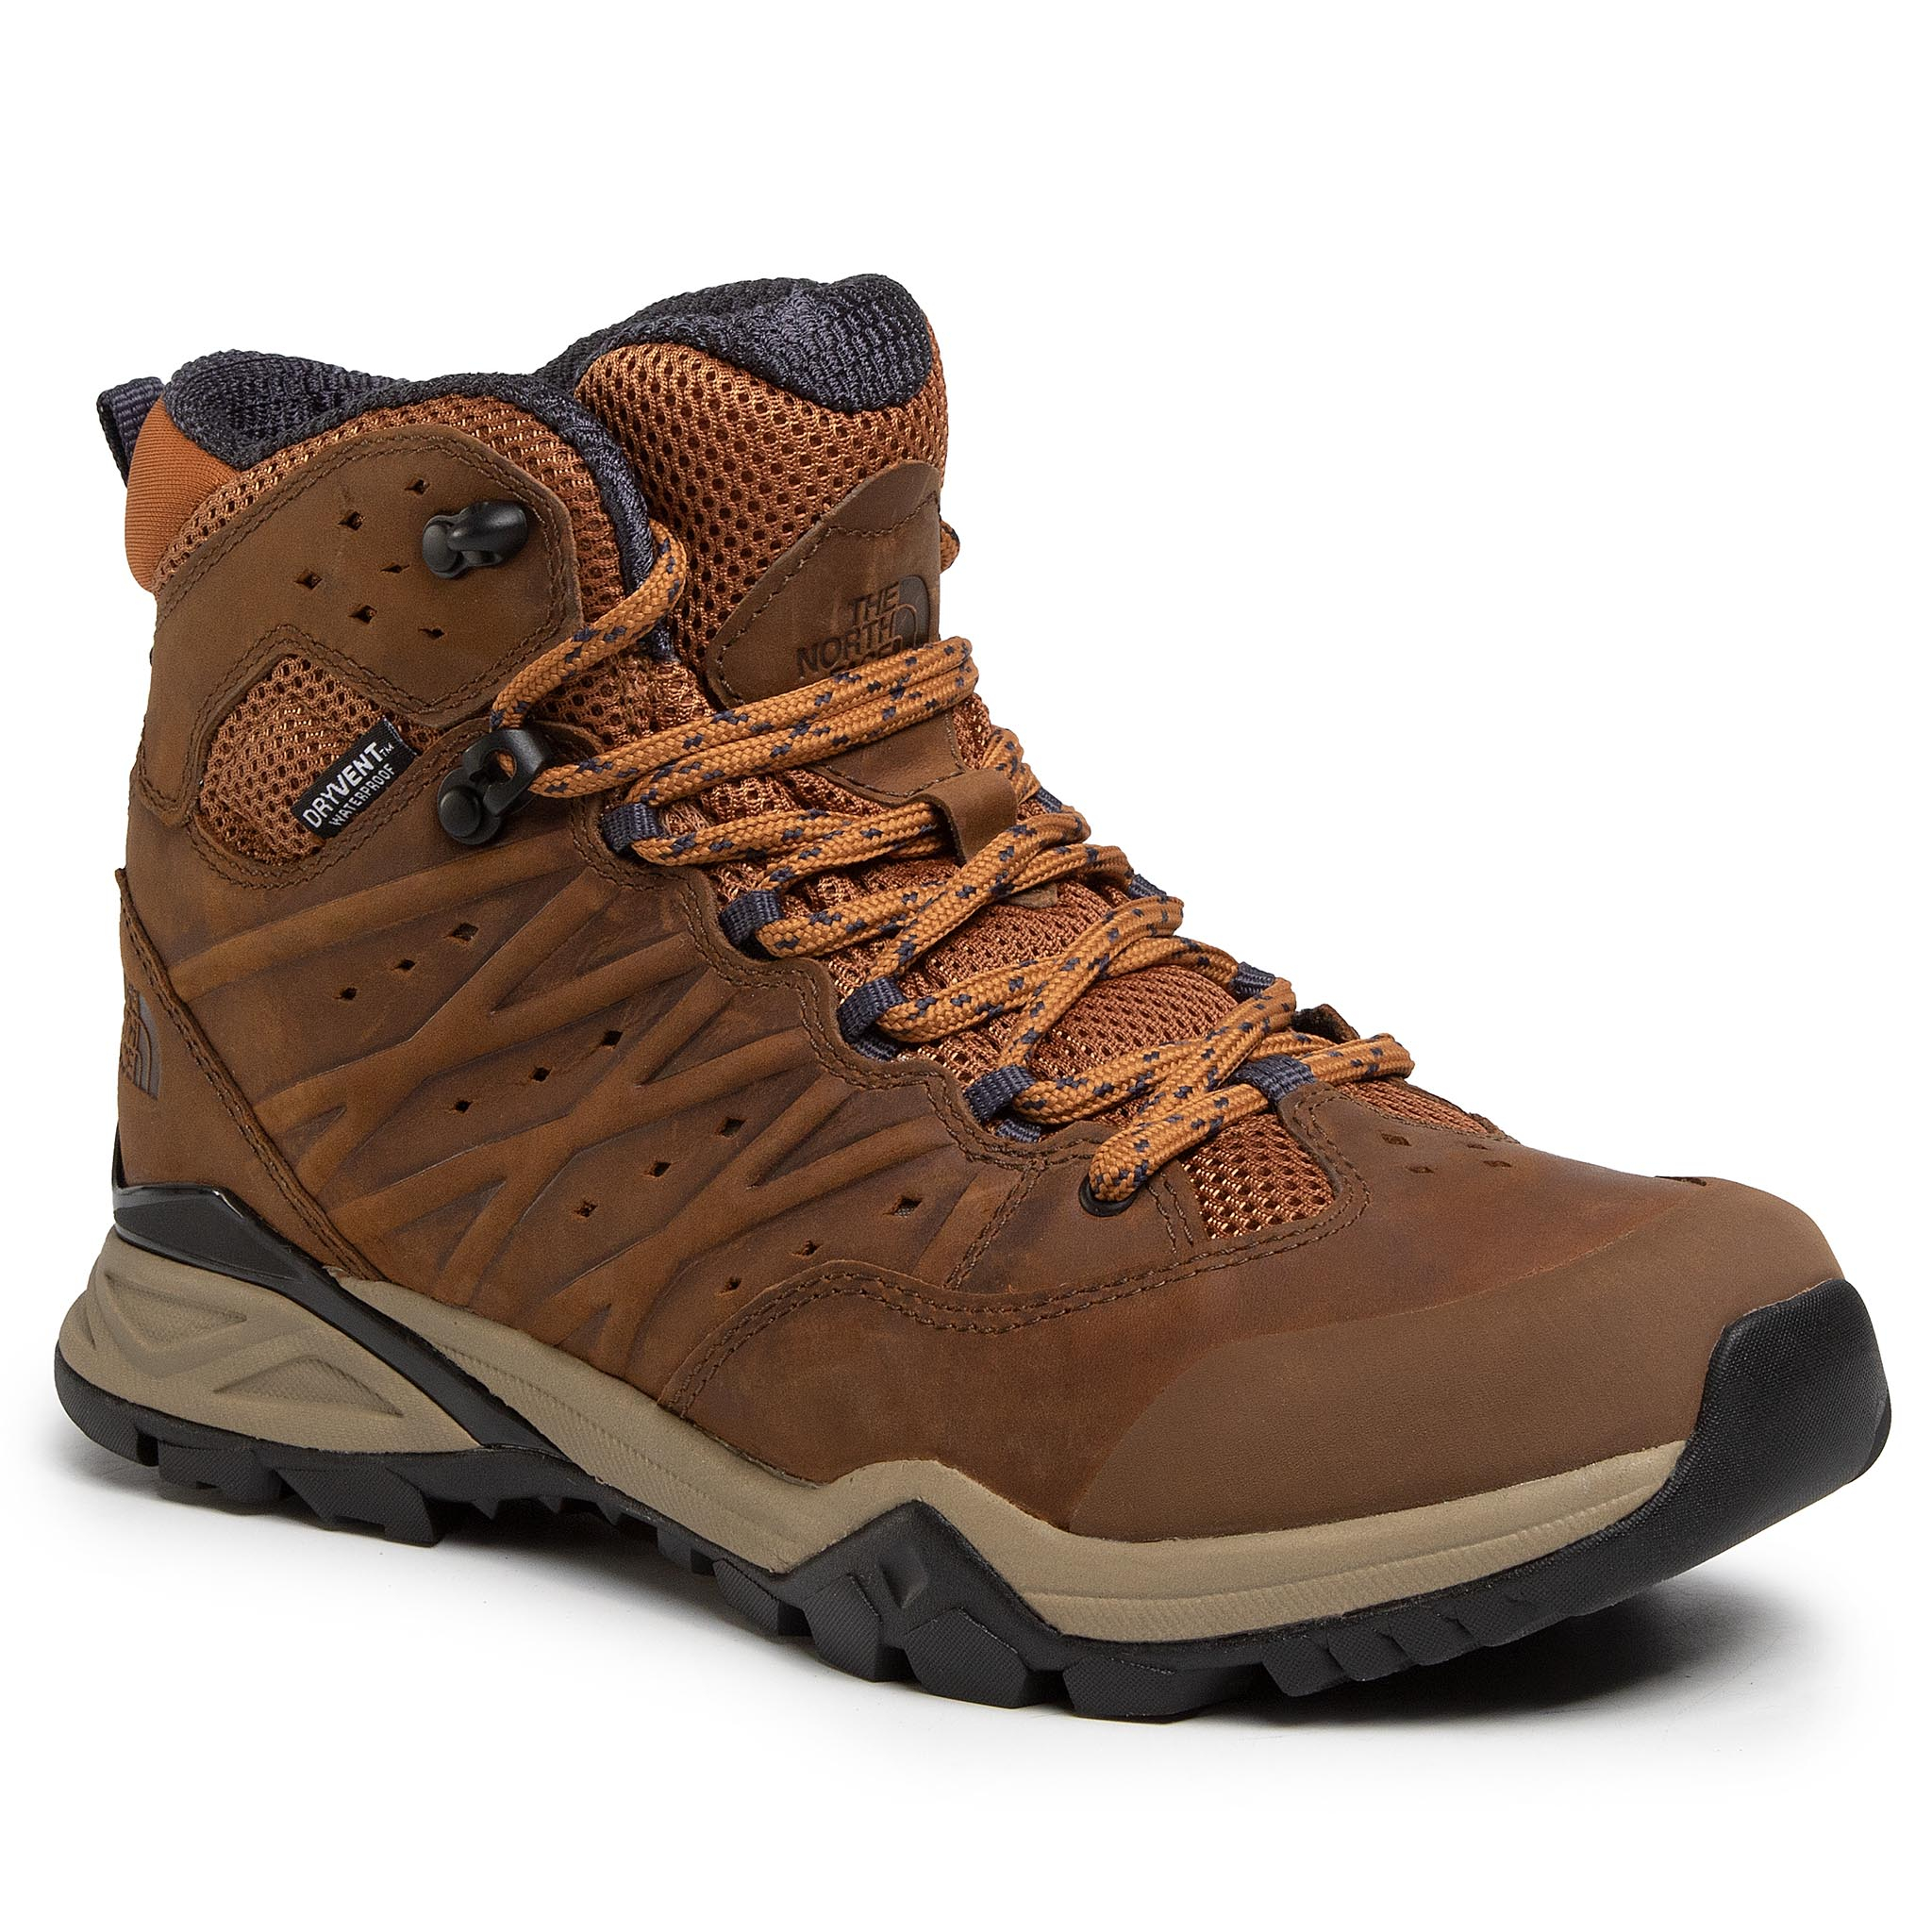 Trekkings THE NORTH FACE - Hedgehog Hike II Mid Wp NF0A4PF5H07 Timber Tan/India Ink